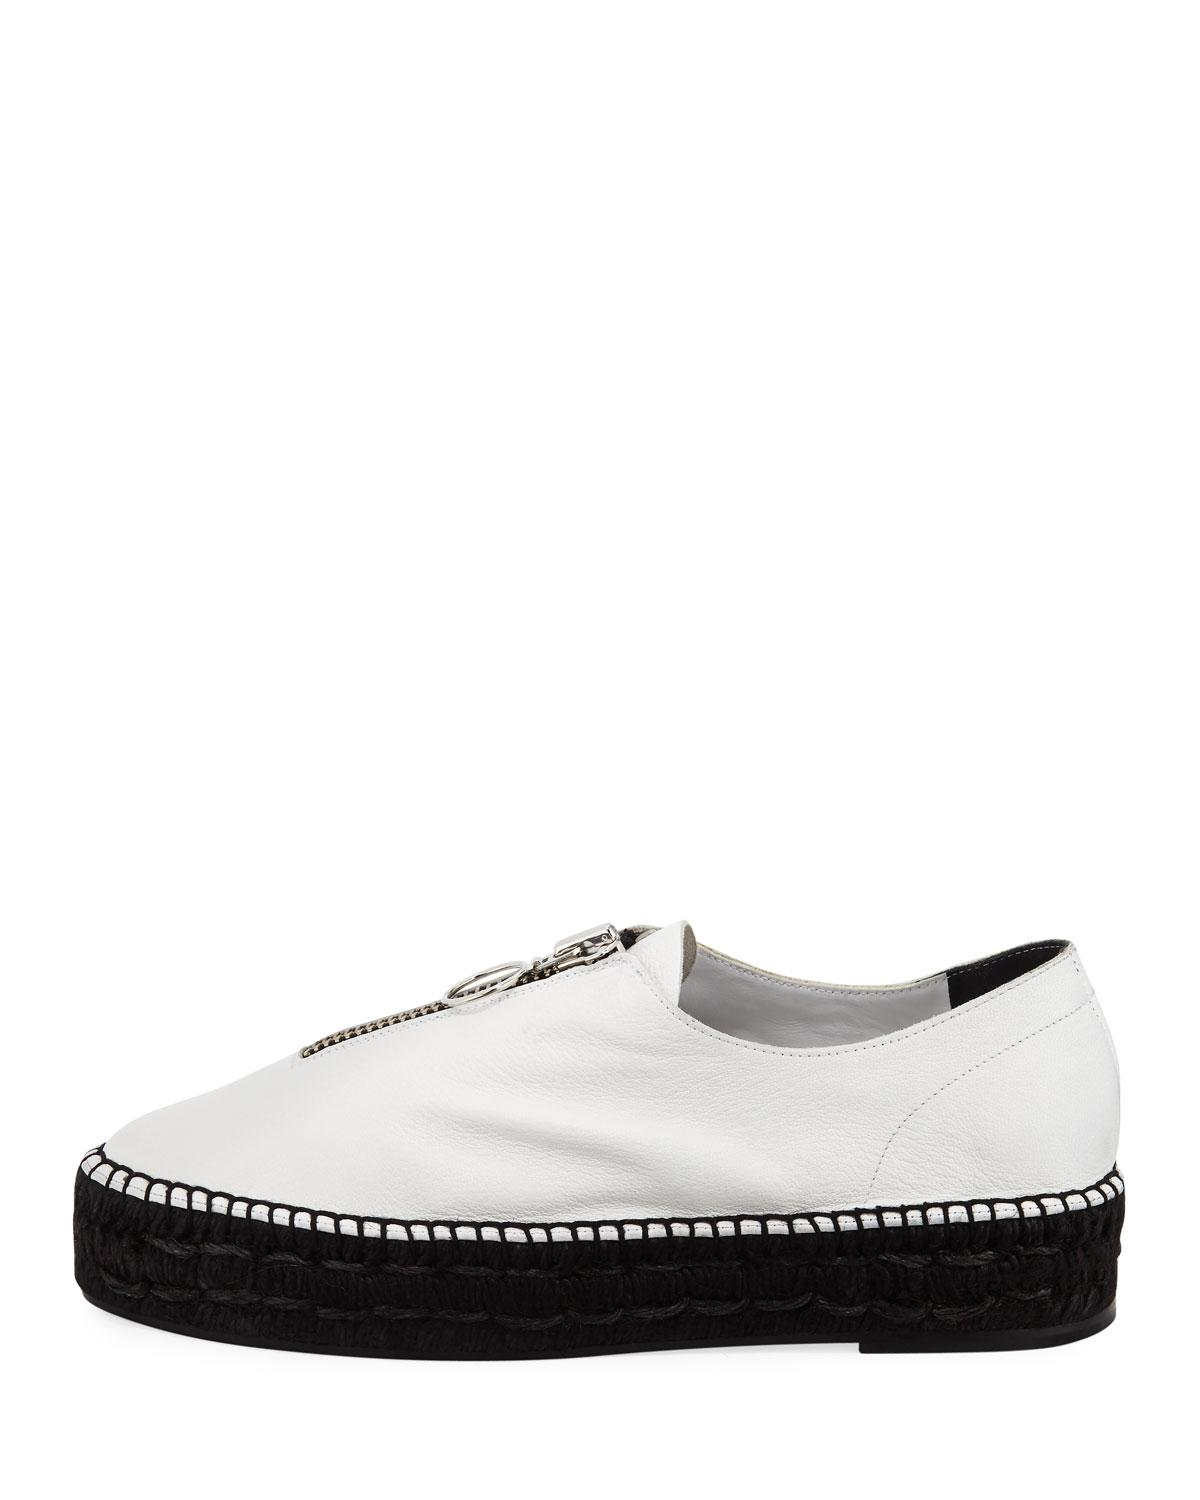 a02db5a71ee Lyst - Alexander Wang Devon Soft Leather Zip Platform Sneakers in White